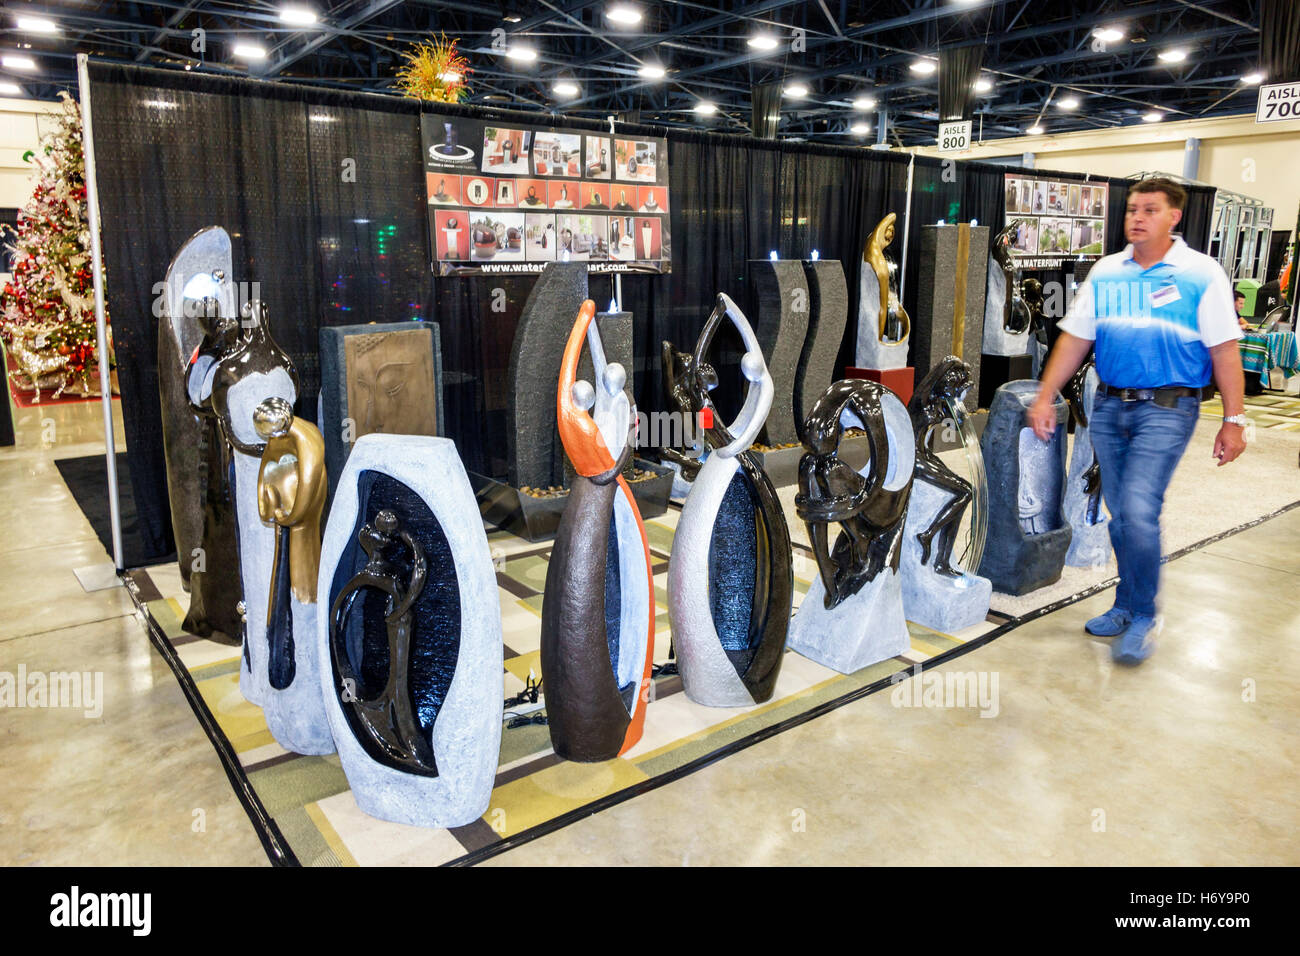 Florida Miami Beach Convention Center Centre Home Design And Remodeling Show  Sculptures Sale Display